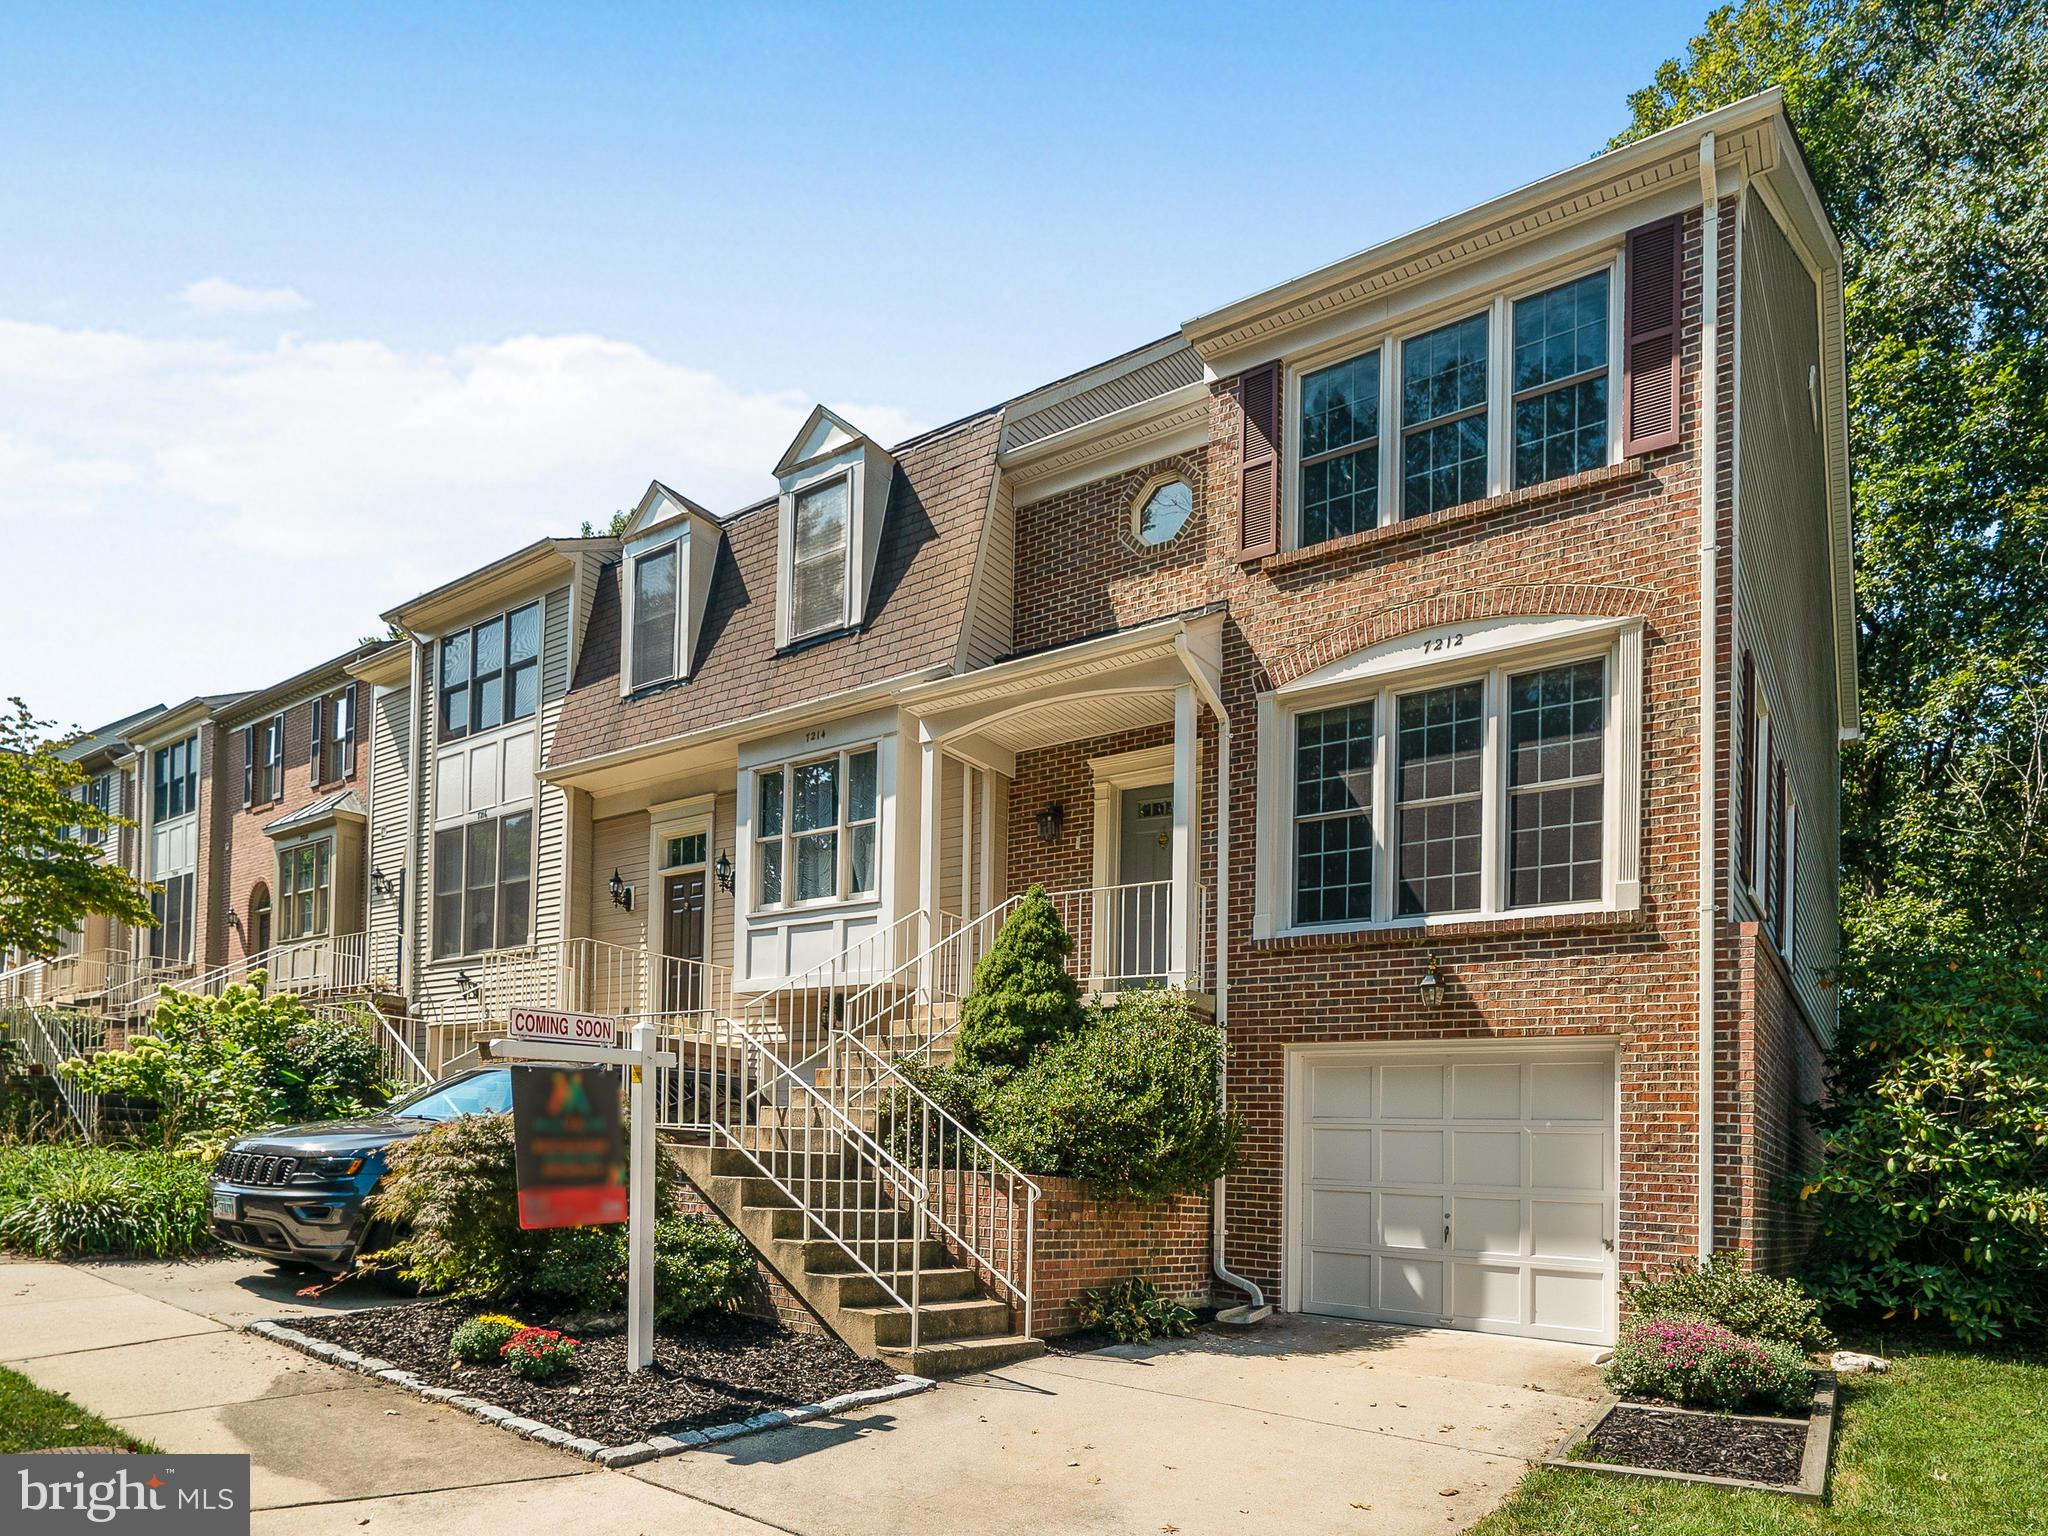 3BR/ 2 Full/2 Half BA end unit townhouse with 1 car garage backing to parkland in Springfield! Beautiful hardwoods on main level and nice carpet on upper level. Huge eat-in kitchen with walkout to deck has granite countertops; center island; stainless steel appliances, including double convection oven. Basement features wood burning fireplace, recessed lighting, half bath, good size utility/laundry room, and extra storage under the steps. The master bedroom features vaulted ceilings, walk-in closet, and private bath with soaking tub, shower, and double vanity! 1 car garage has a new painted floor and surprising shelf storage on the left wall! The freshly powerwashed and painted deck backs to tress and has steps for added convenience - perfect for entertaining. Hunt Valley/Irving/West Springfield pyramid. Across the street from commuter lot. Minutes to all transportation, including Metro, VRE, 95/395/495 and the FFX Co Parkway.